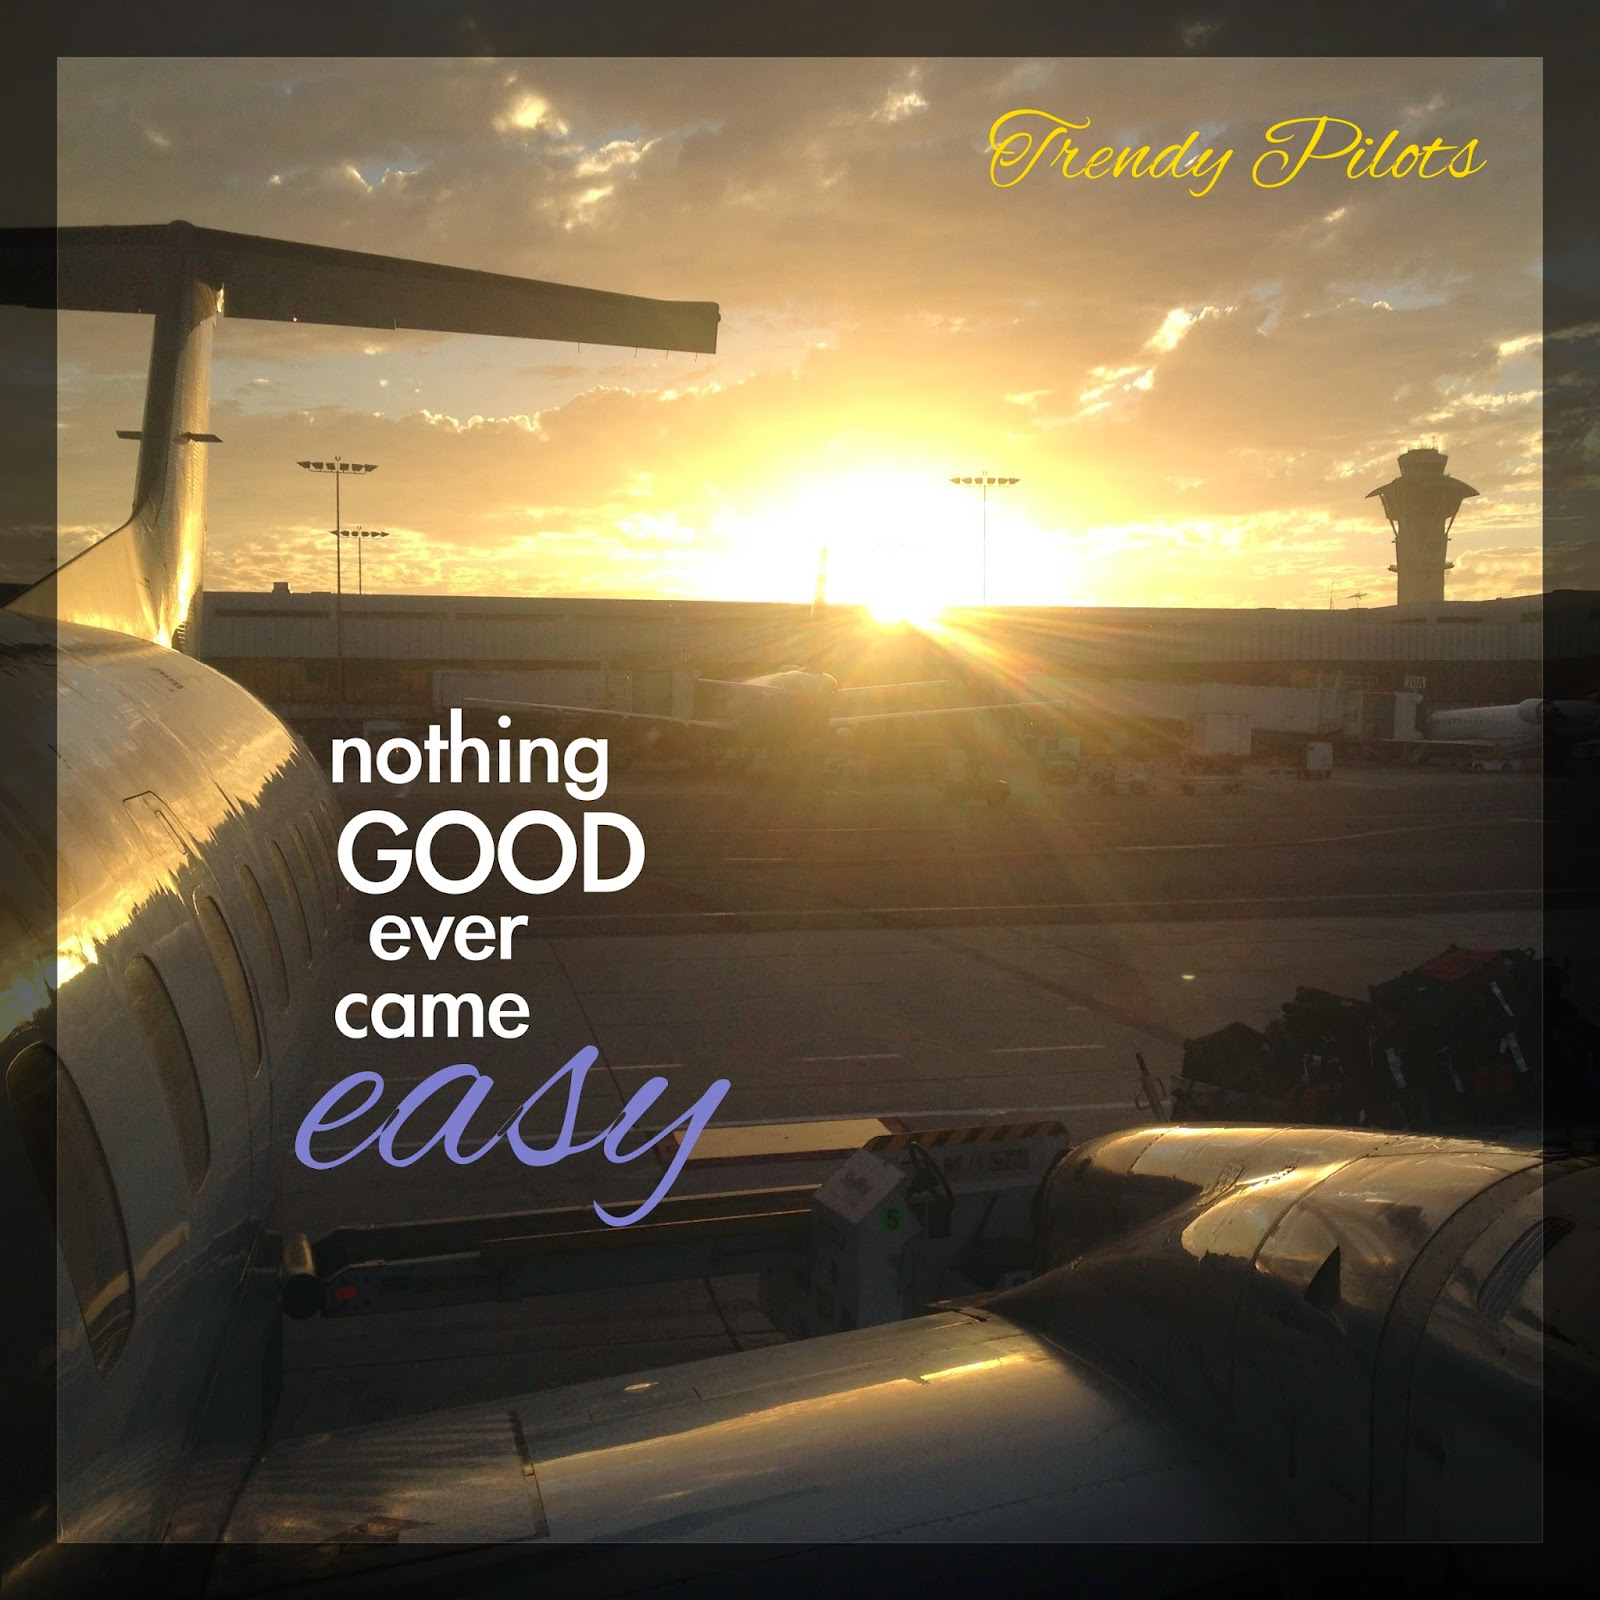 Inspirational Quotes From: Trendy Pilots: Motivational Quotes/Pictures 2014